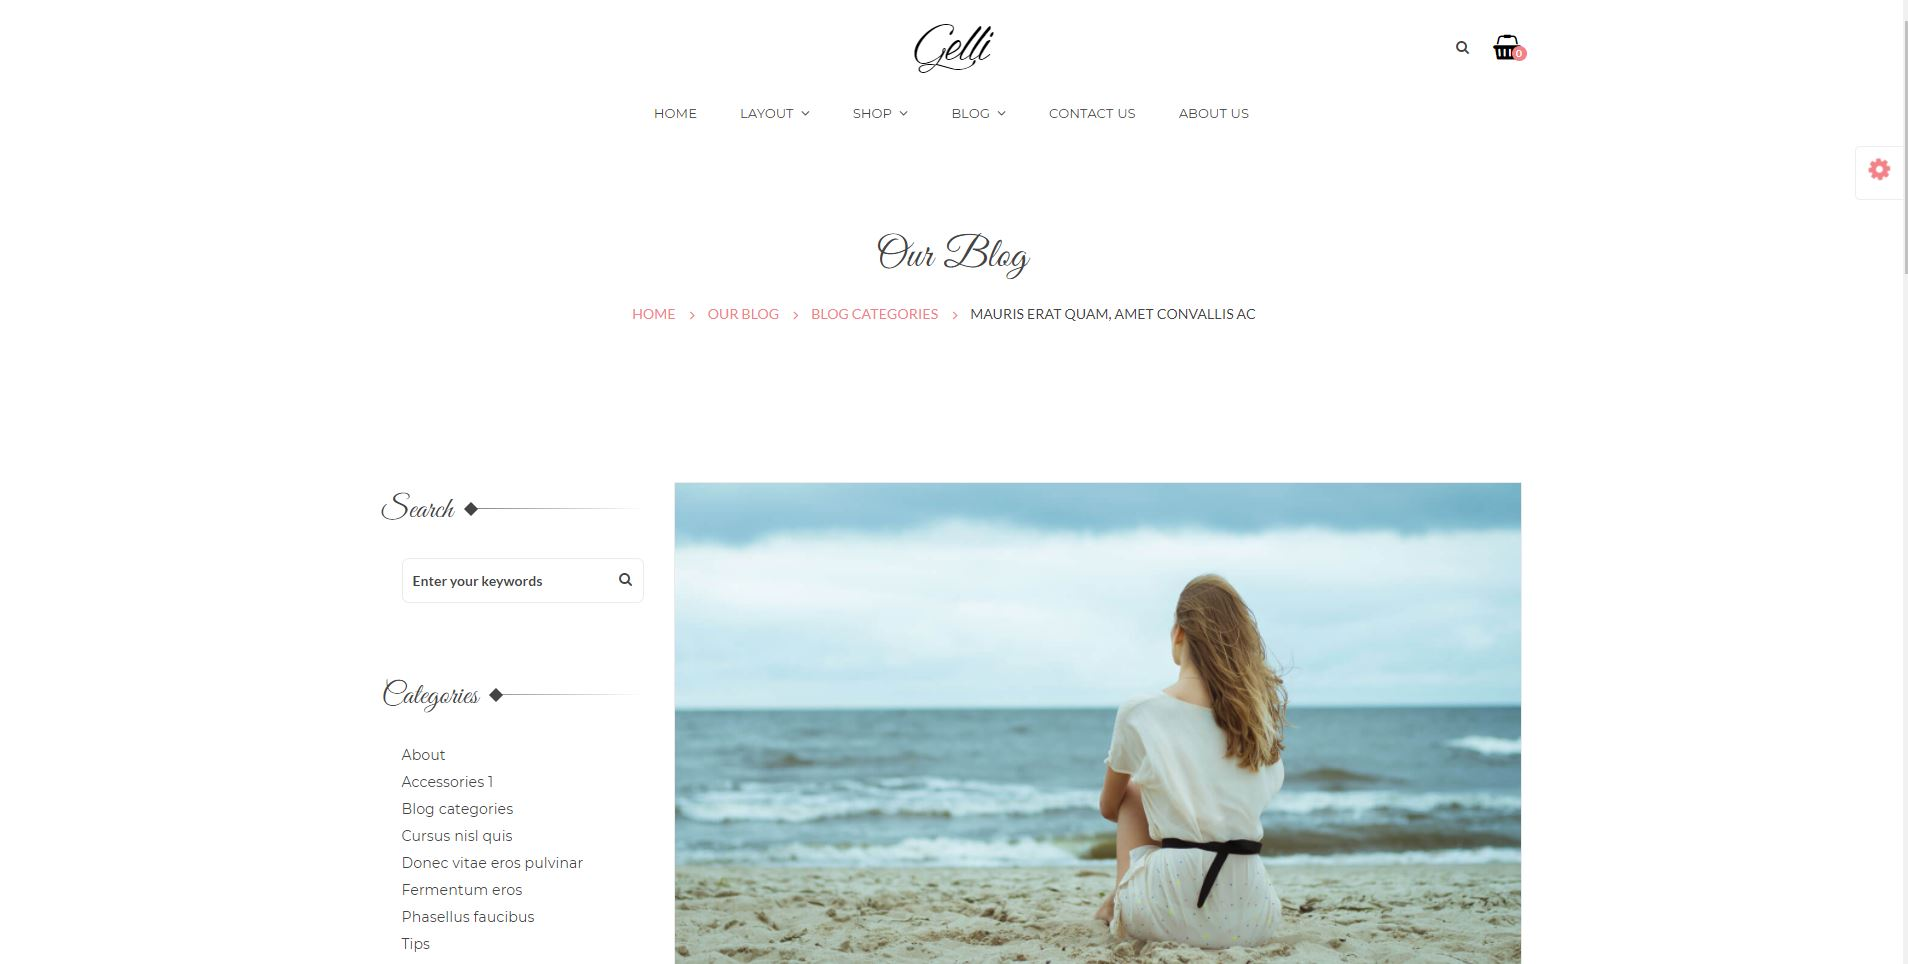 Gelli personal WordPress Theme free